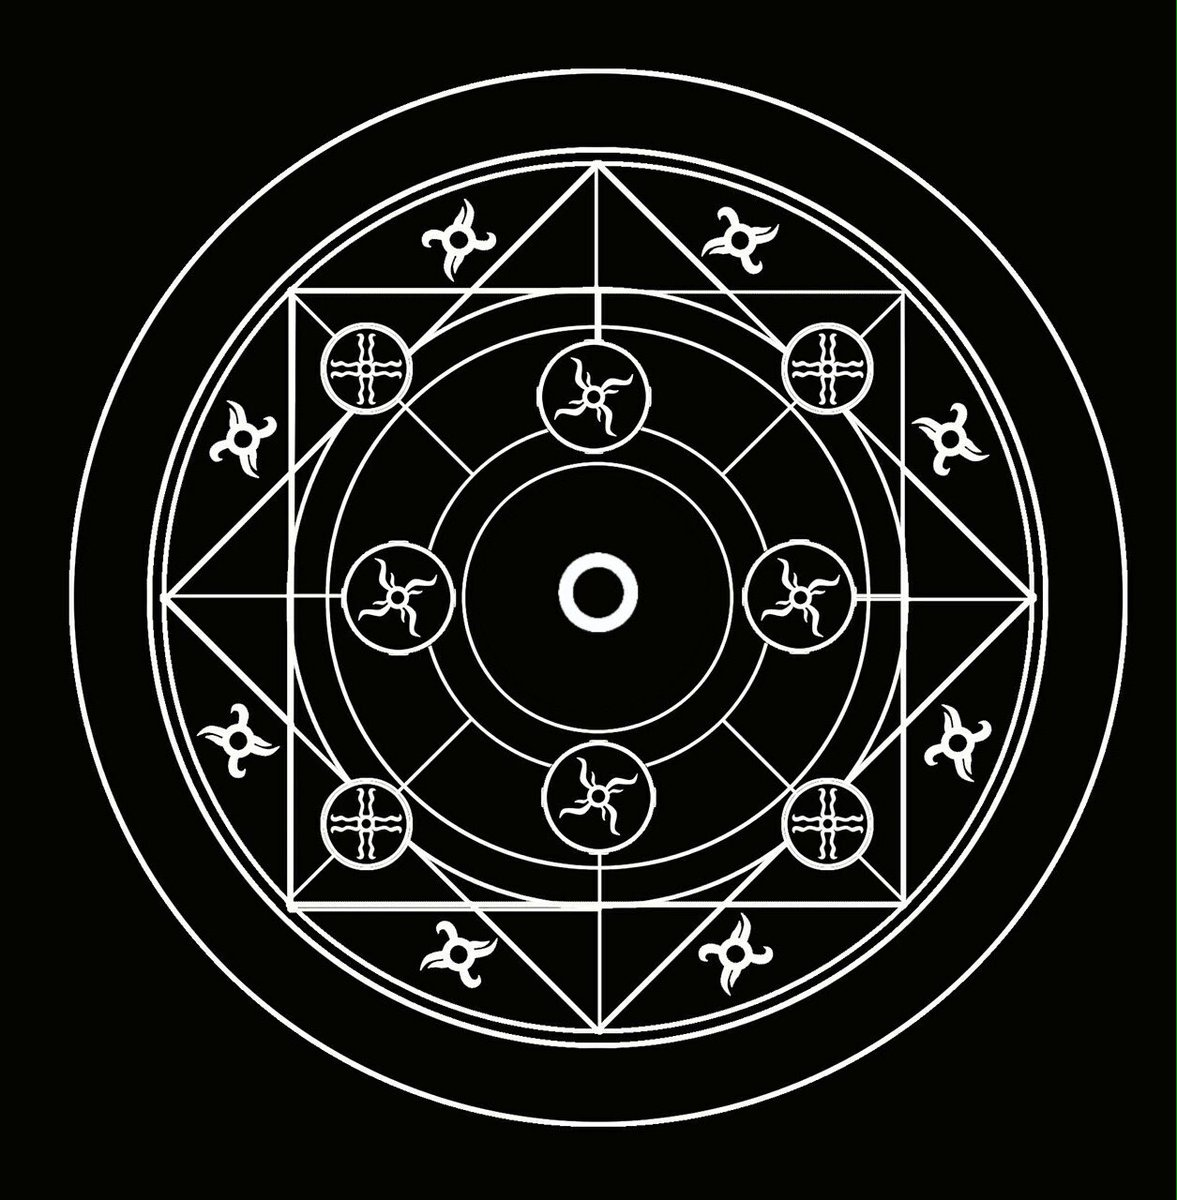 Encantadia saga on twitter keross devas circle a plain circle encantadia saga on twitter keross devas circle a plain circle rid of emotionbeingwisdomspirit a symbol of emptiness a void and perhaps buycottarizona Image collections